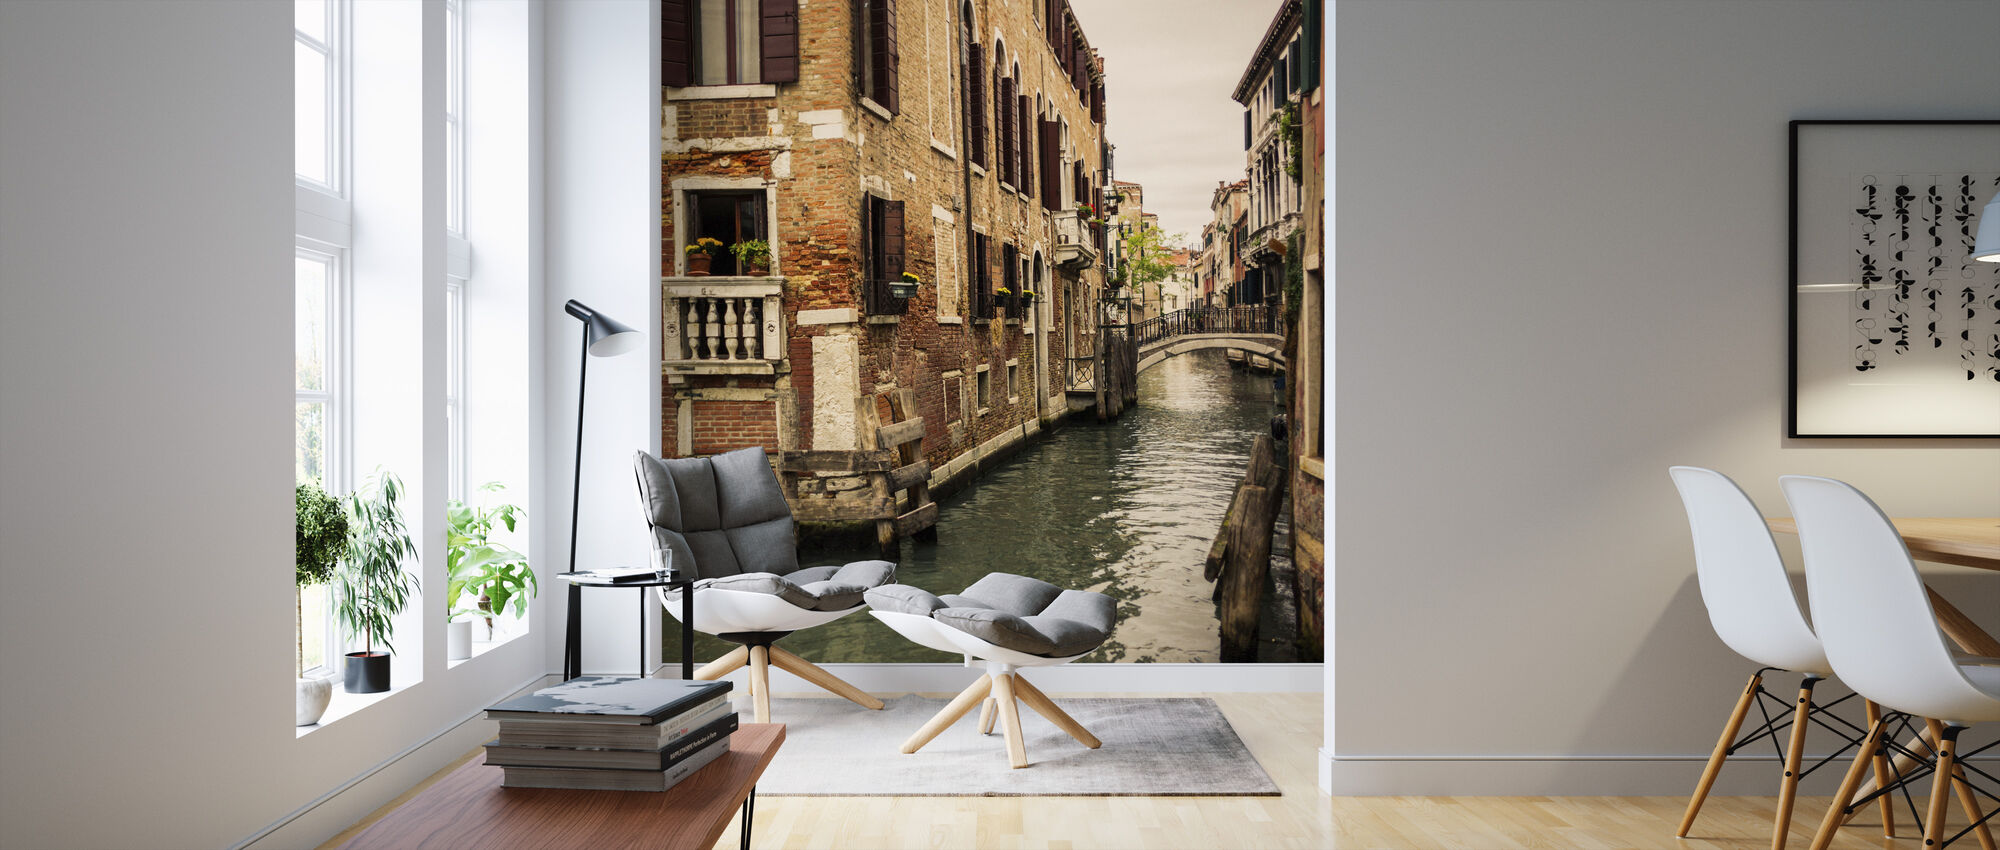 Bricks and Bridges in Venice - Wallpaper - Living Room